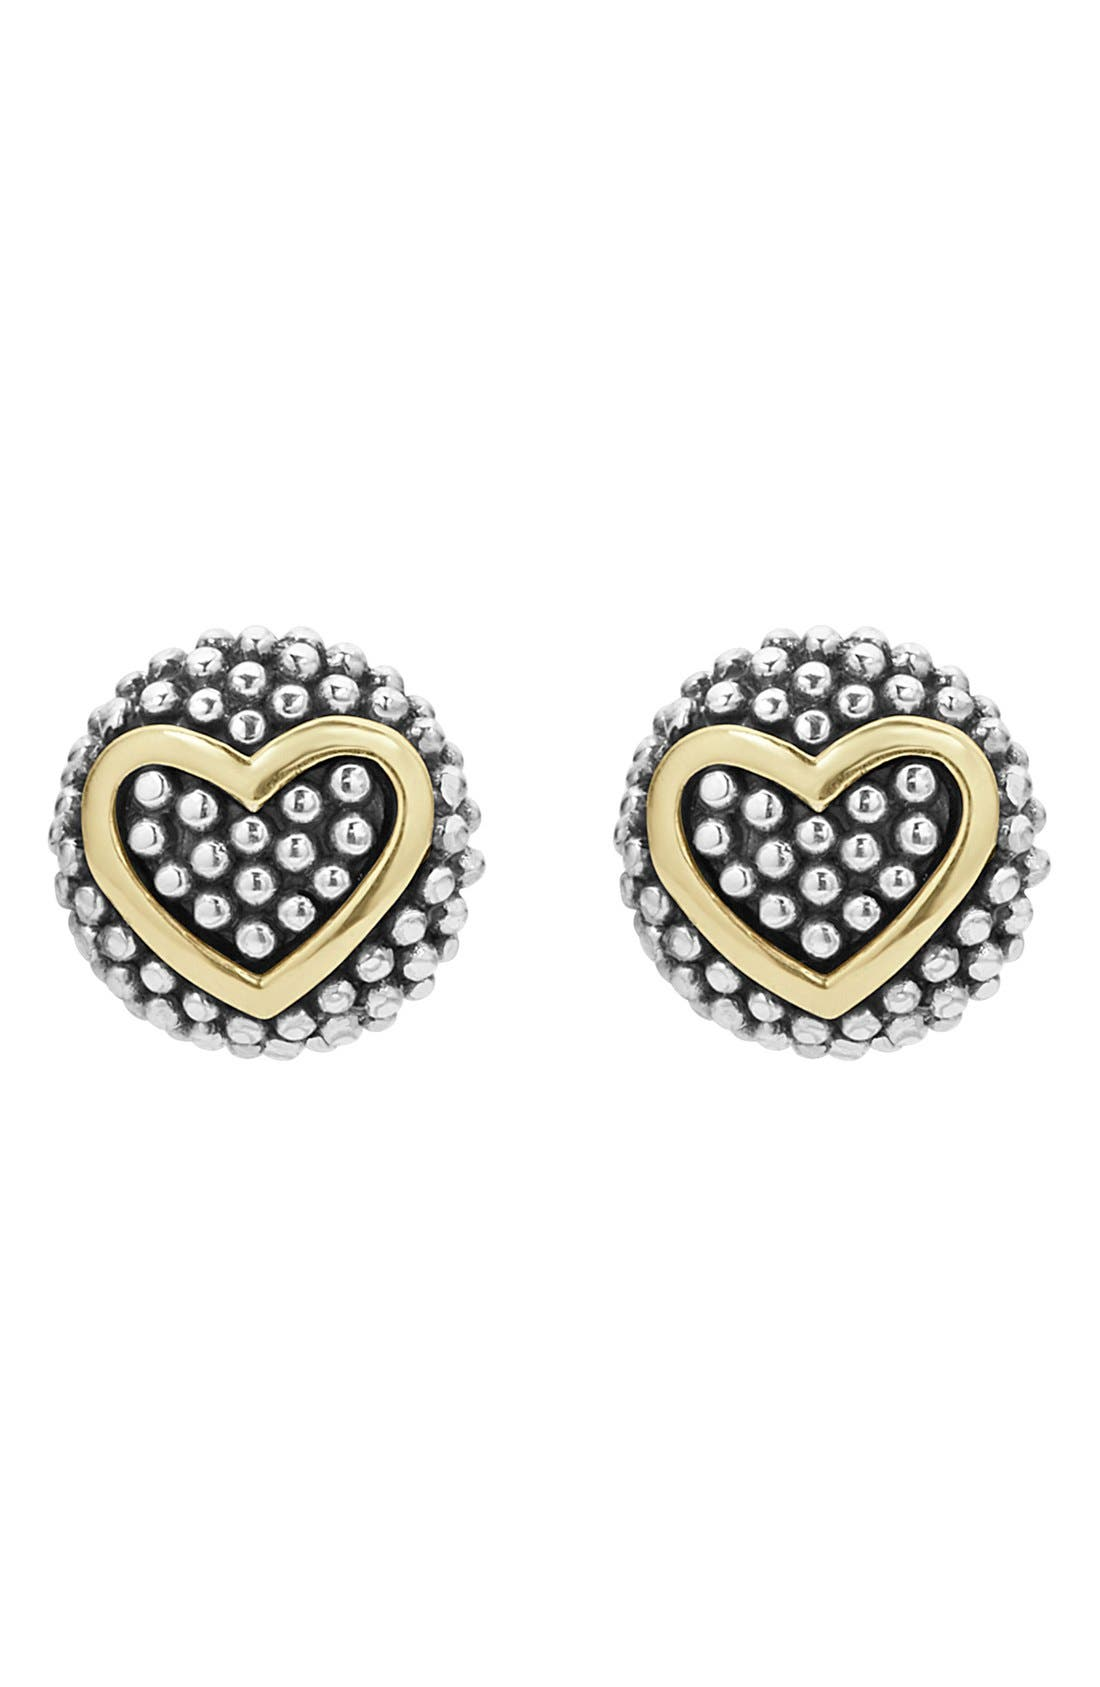 Main Image - LAGOS 'Caviar' Heart Stud Earrings